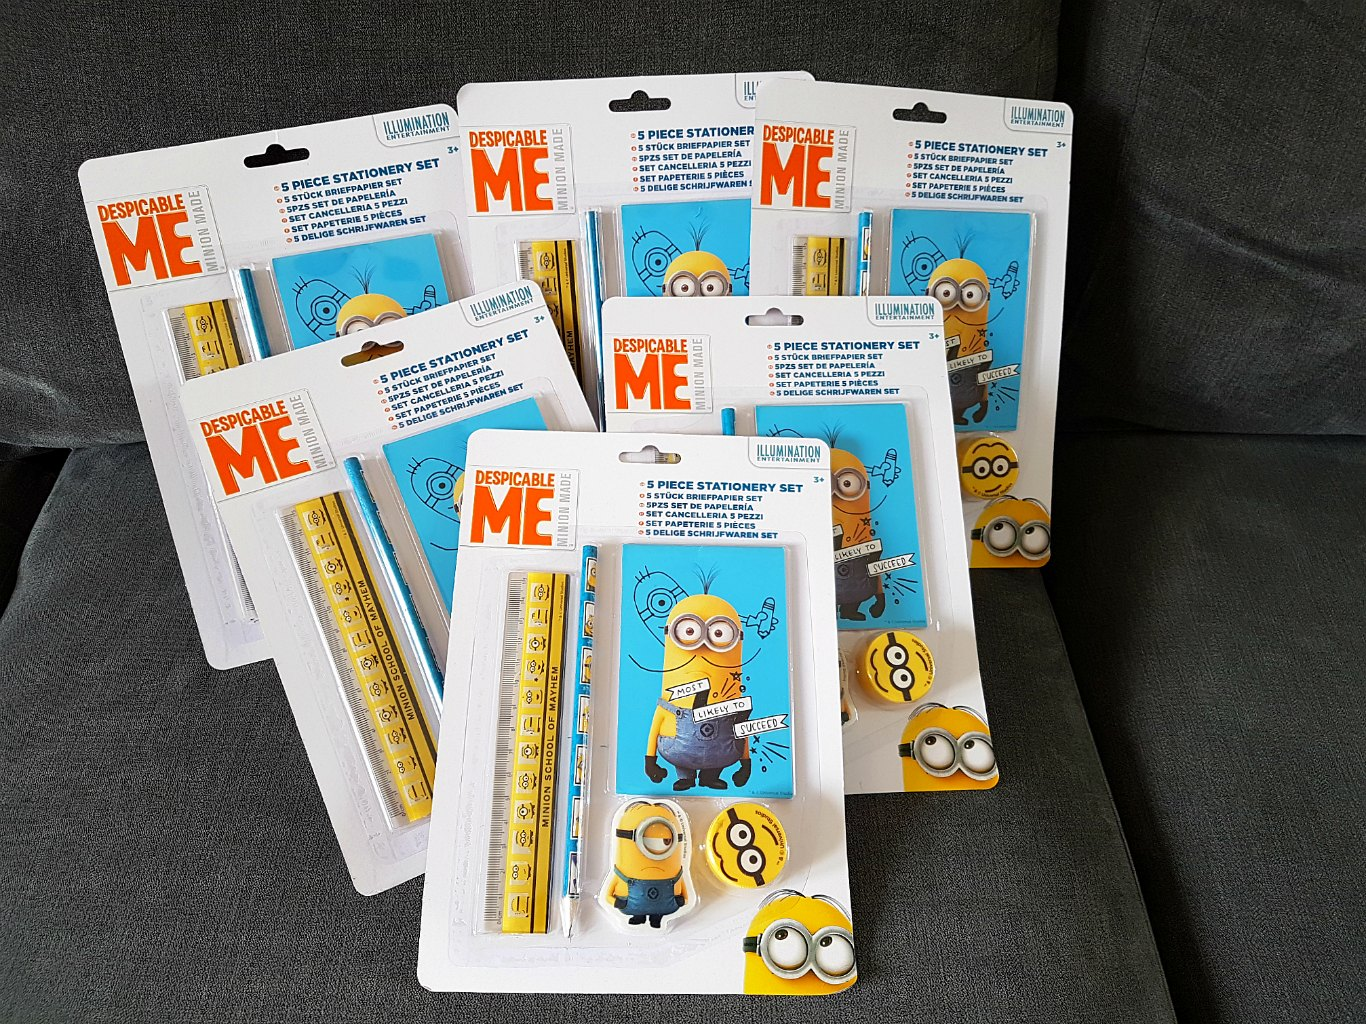 Minions, Despicable Me 3, Minions stationery giveaway